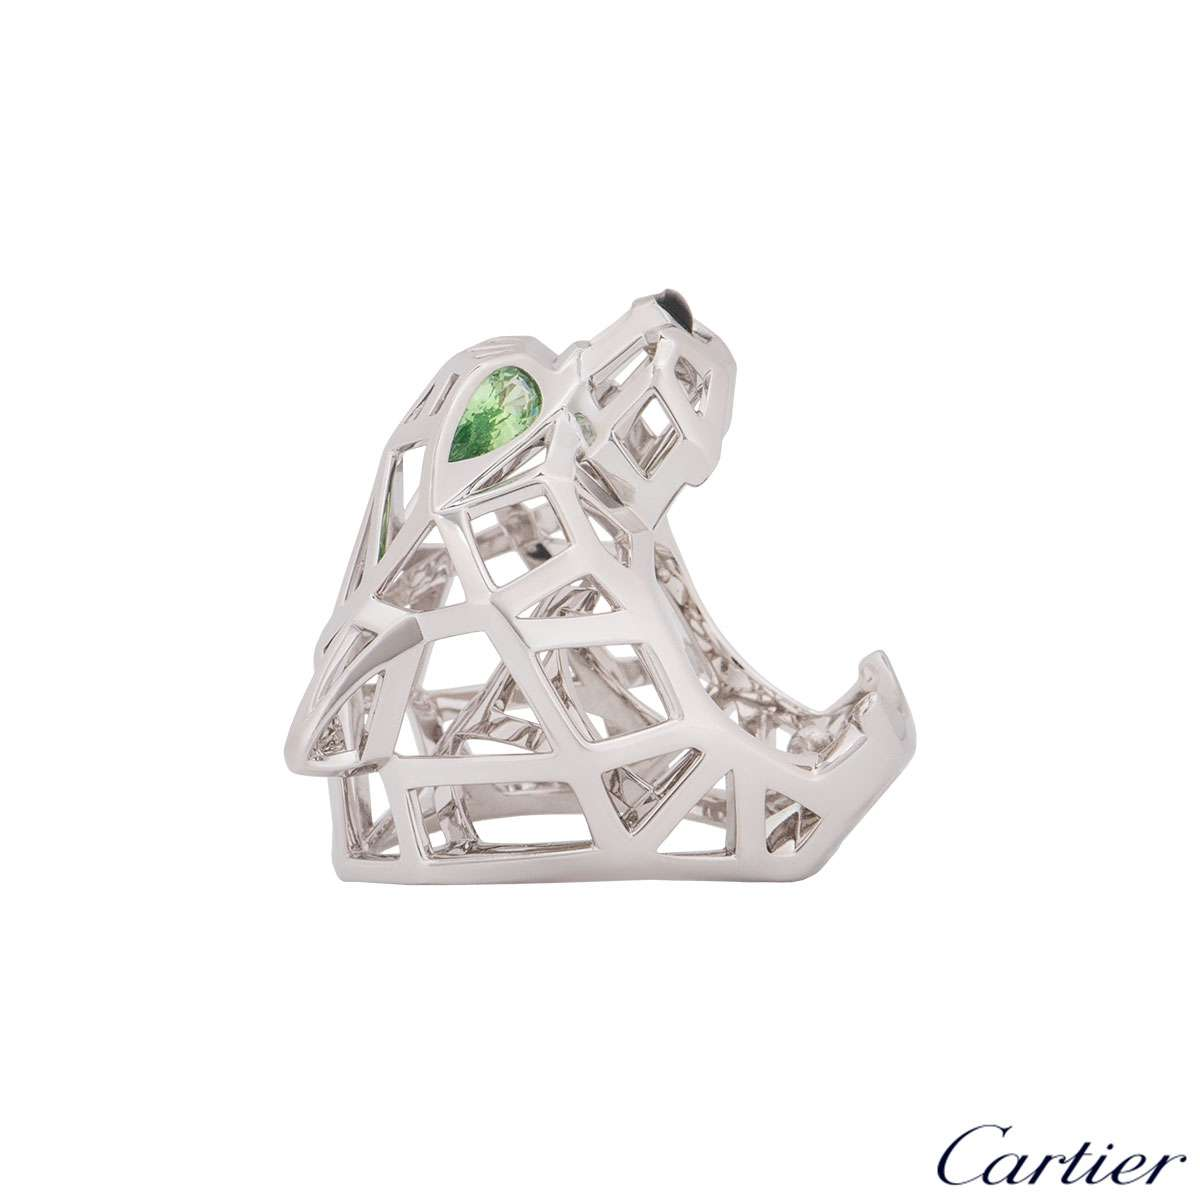 Cartier White Gold Panthere Ring N4730900